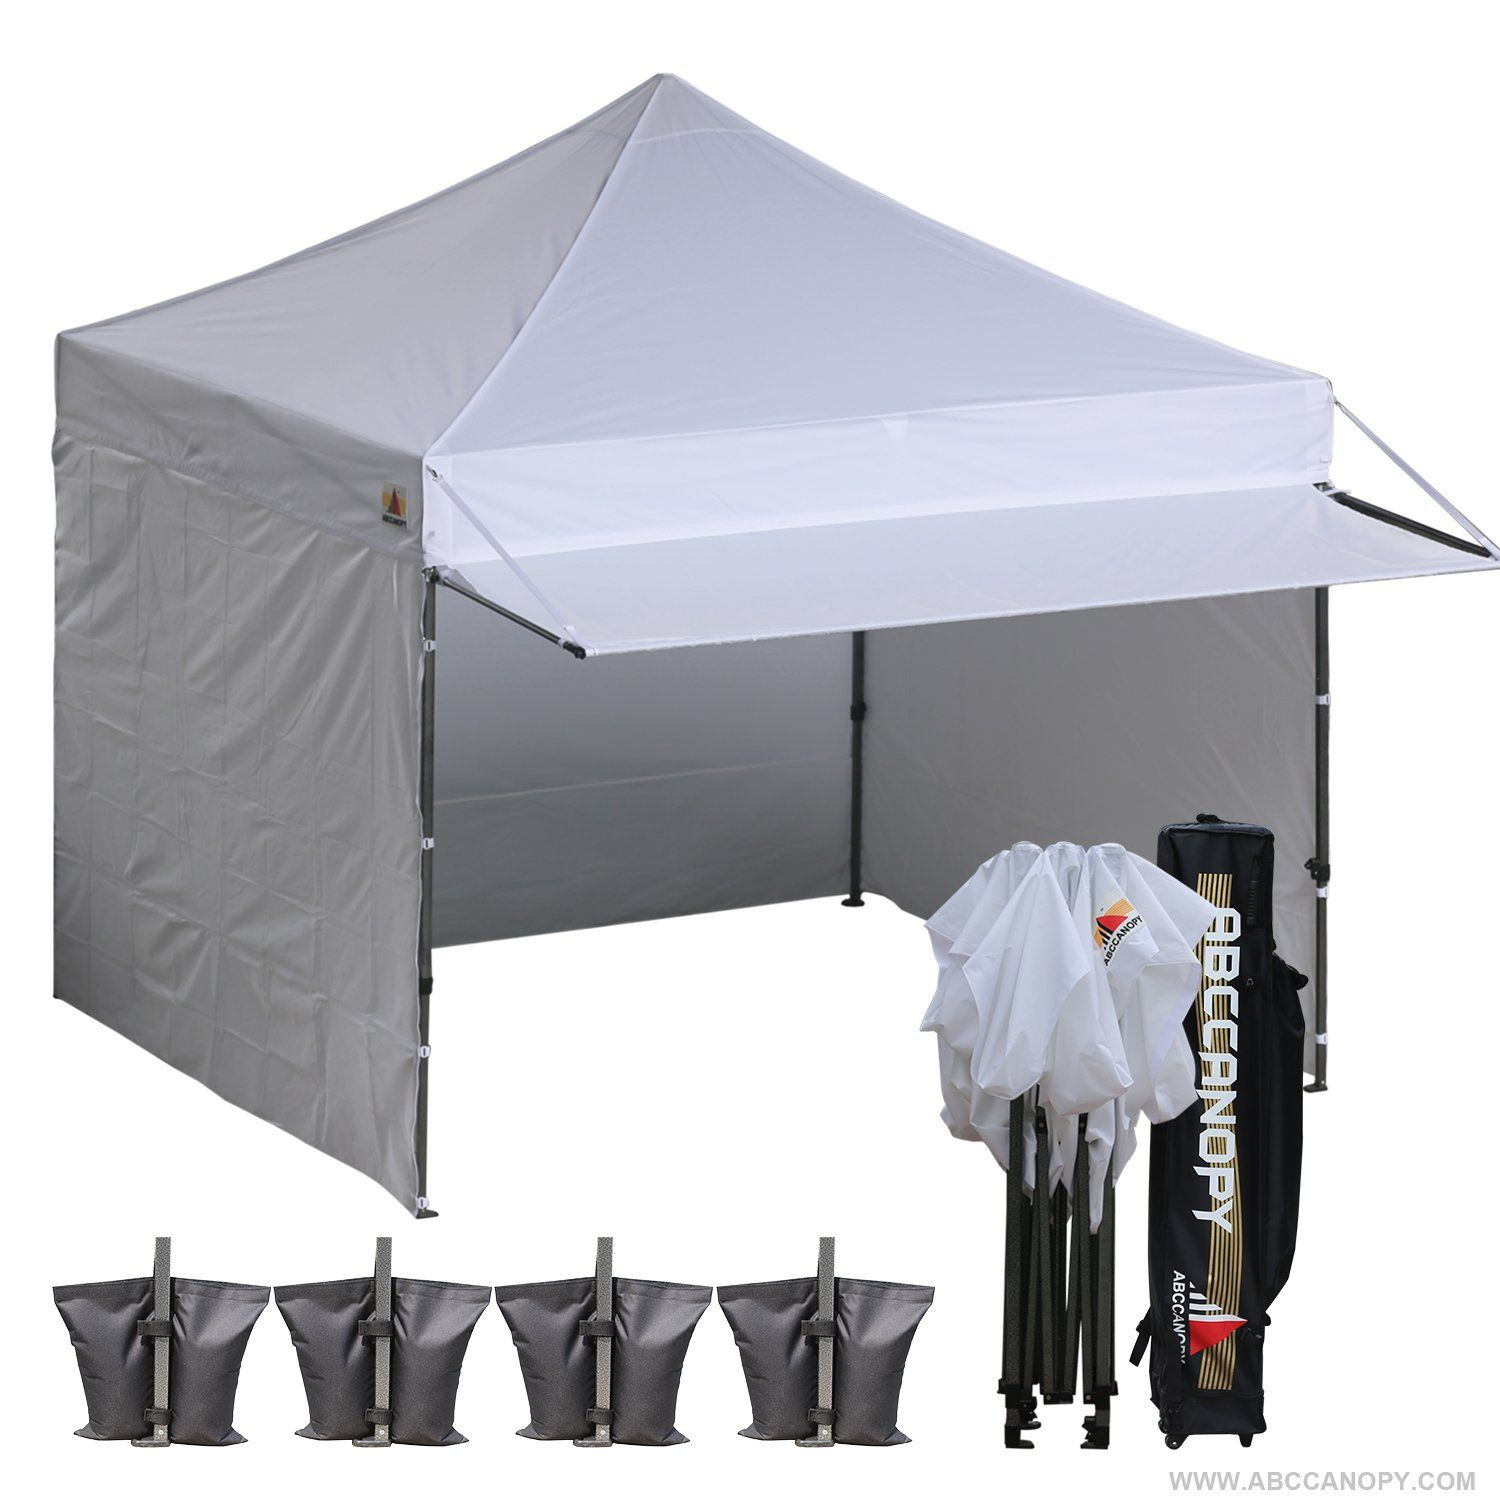 10x10 Abccanopy Easy Pop Up Canopy Tent Instant Shelter Commercial Portable Market Canopy With Matching Sidewalls Weight B Pop Up Canopy Tent Canopy Tent Tent